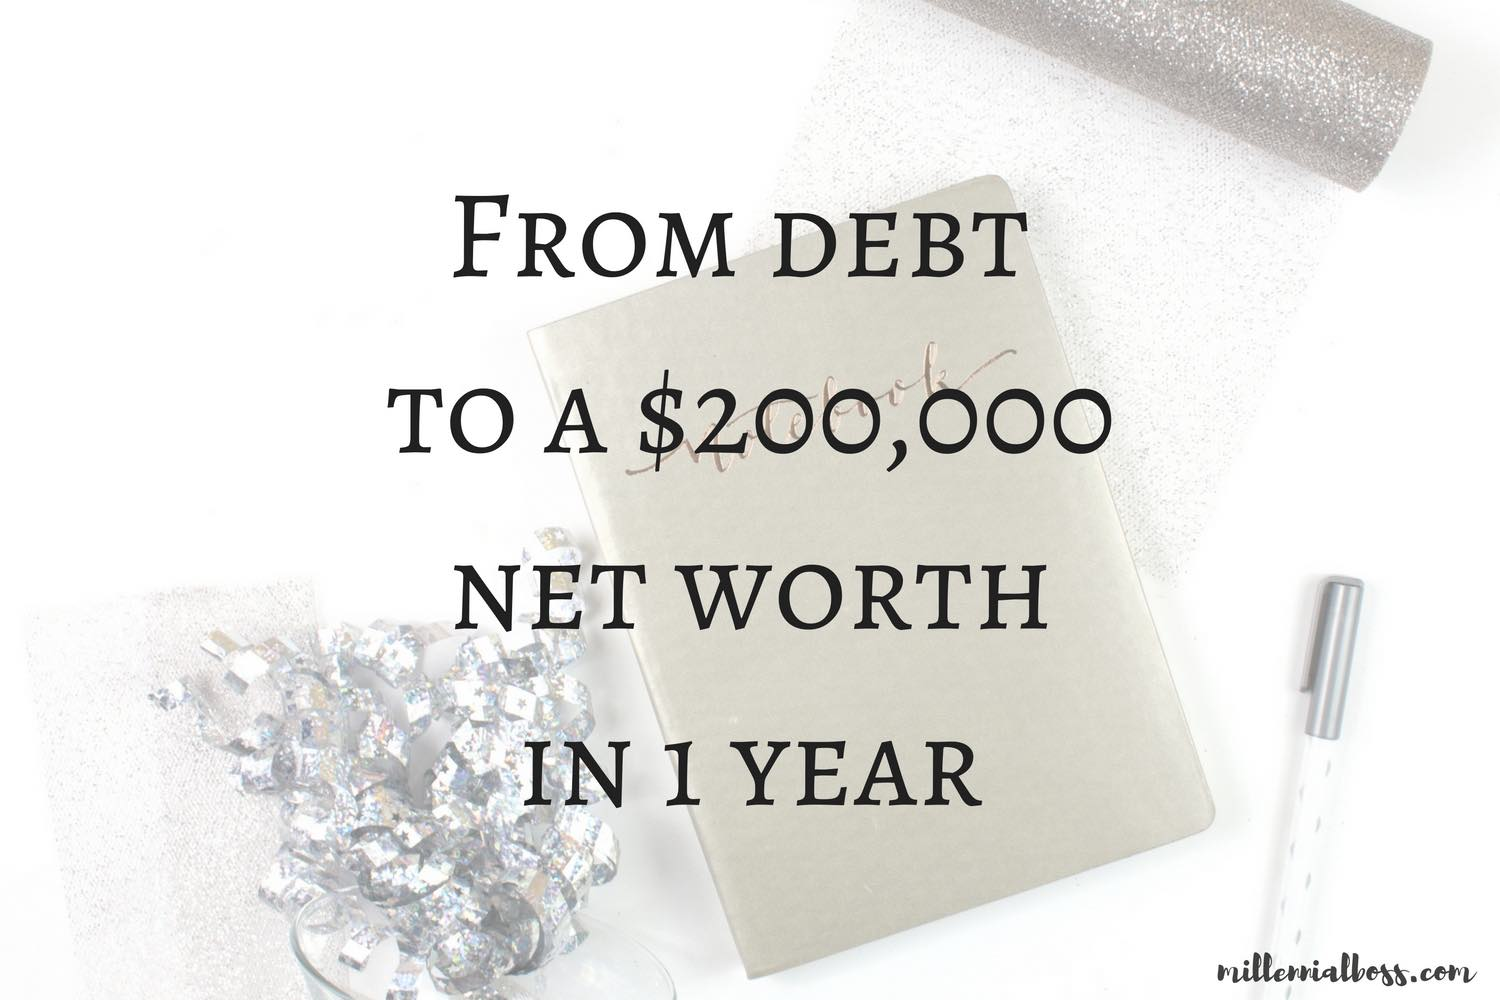 Capital One Car Payment >> 2016 in Review: From $60k in Debt to $200k Net Worth